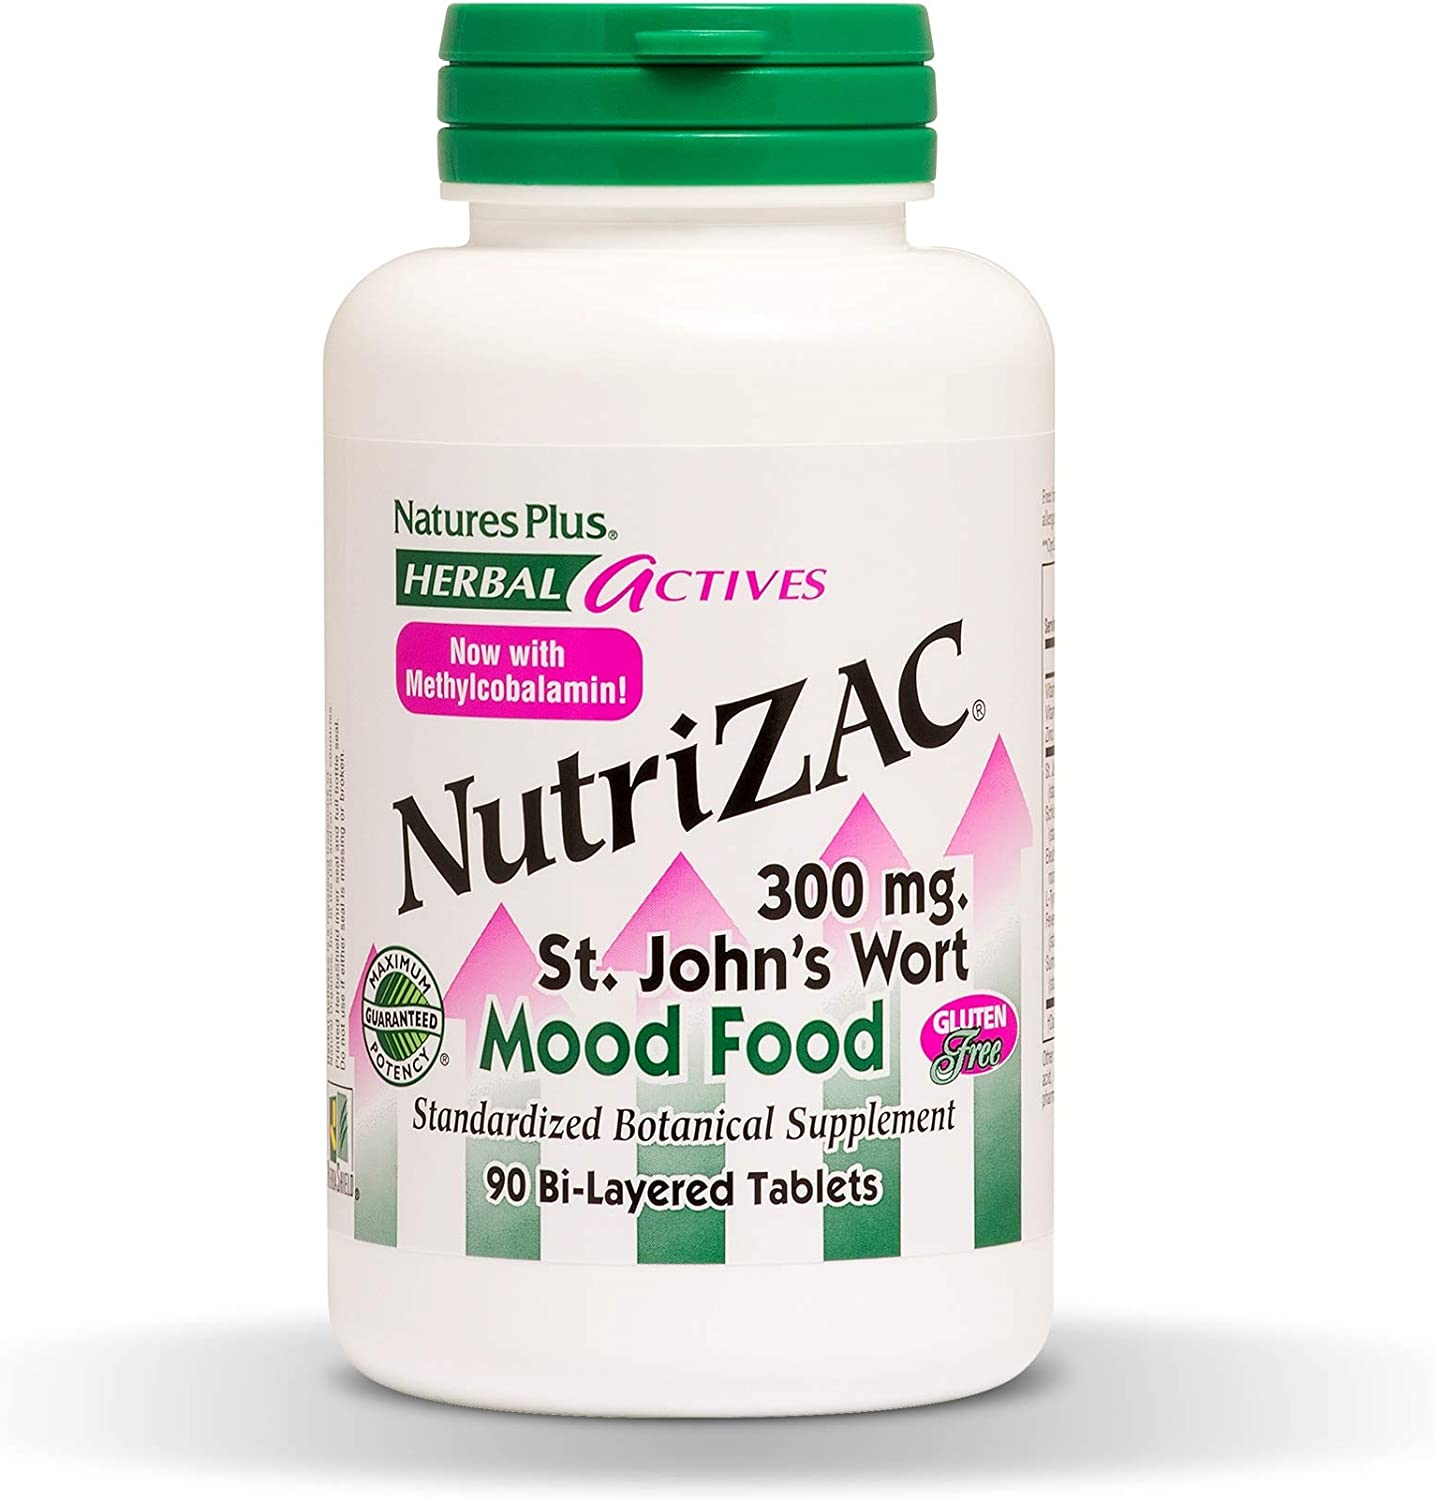 NaturesPlus Herbal Actives NutriZAC Mood Food – 300 mg St Johns Wort, 90 Vegan Bi-Layered Tablets – Maximum Potency Natural Mood Booster – Vegetarian, Gluten-Free – 90 Servings